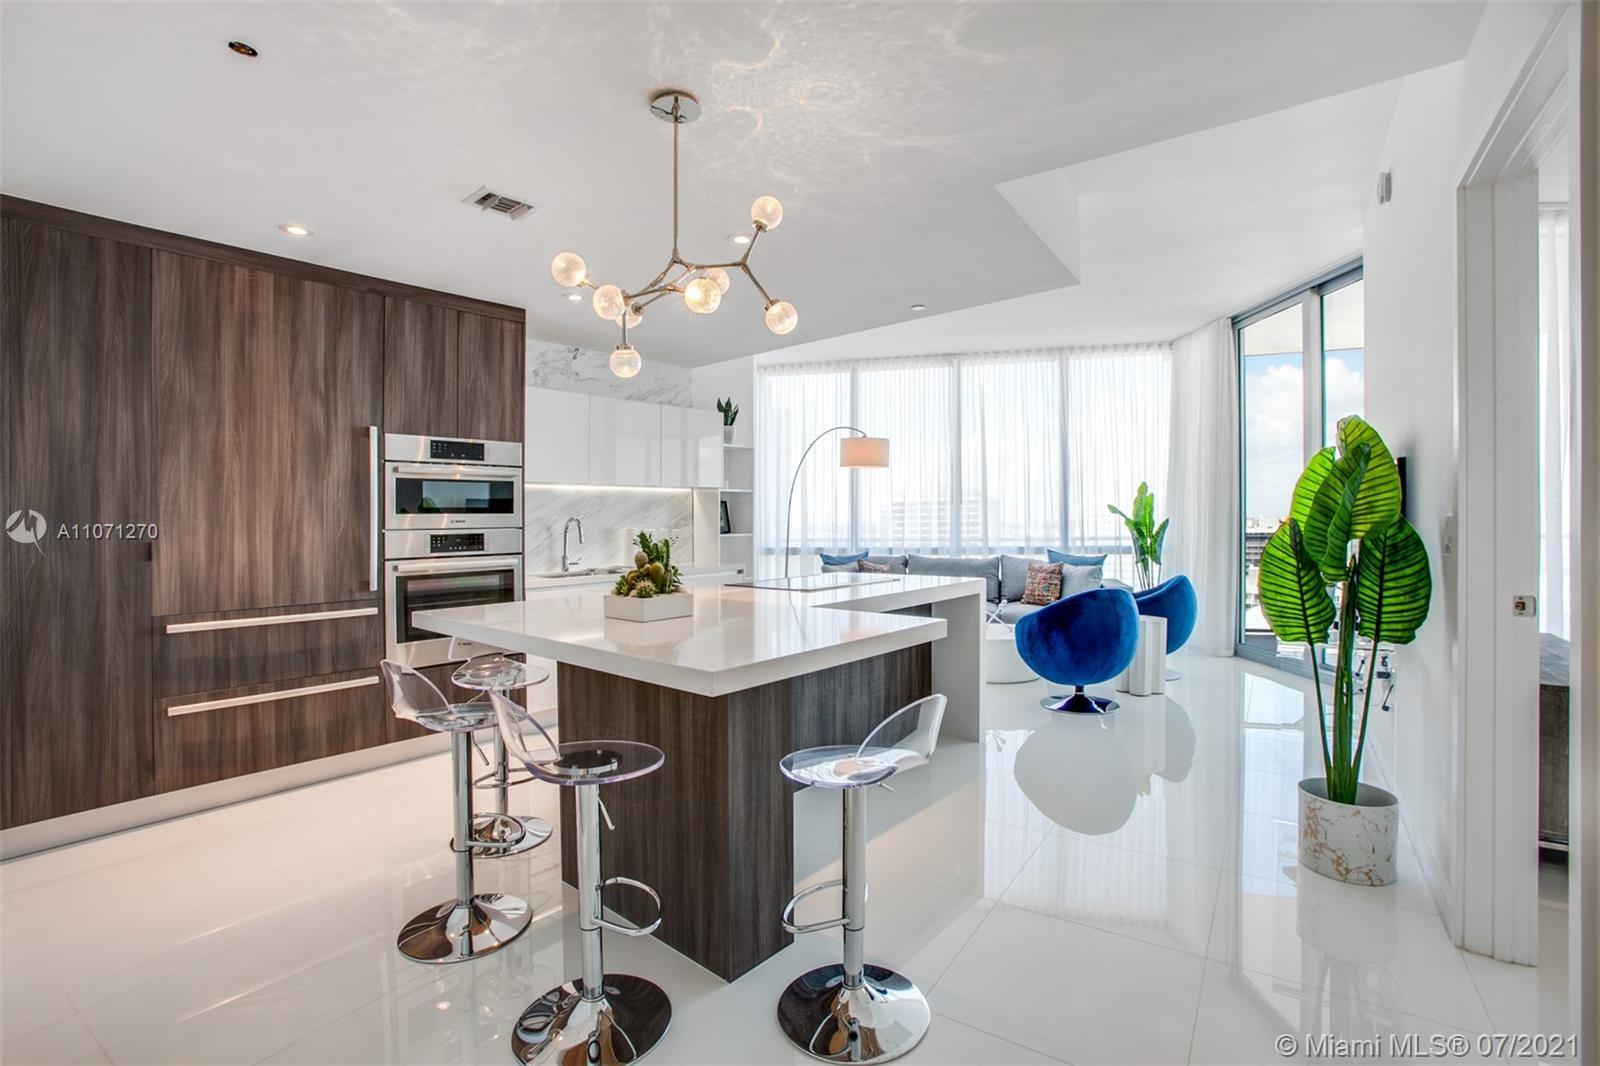 Luxury 1 Bed + Den /2 bath Residential Condo at the Miami World Center with 10 Foot ceilings and pri